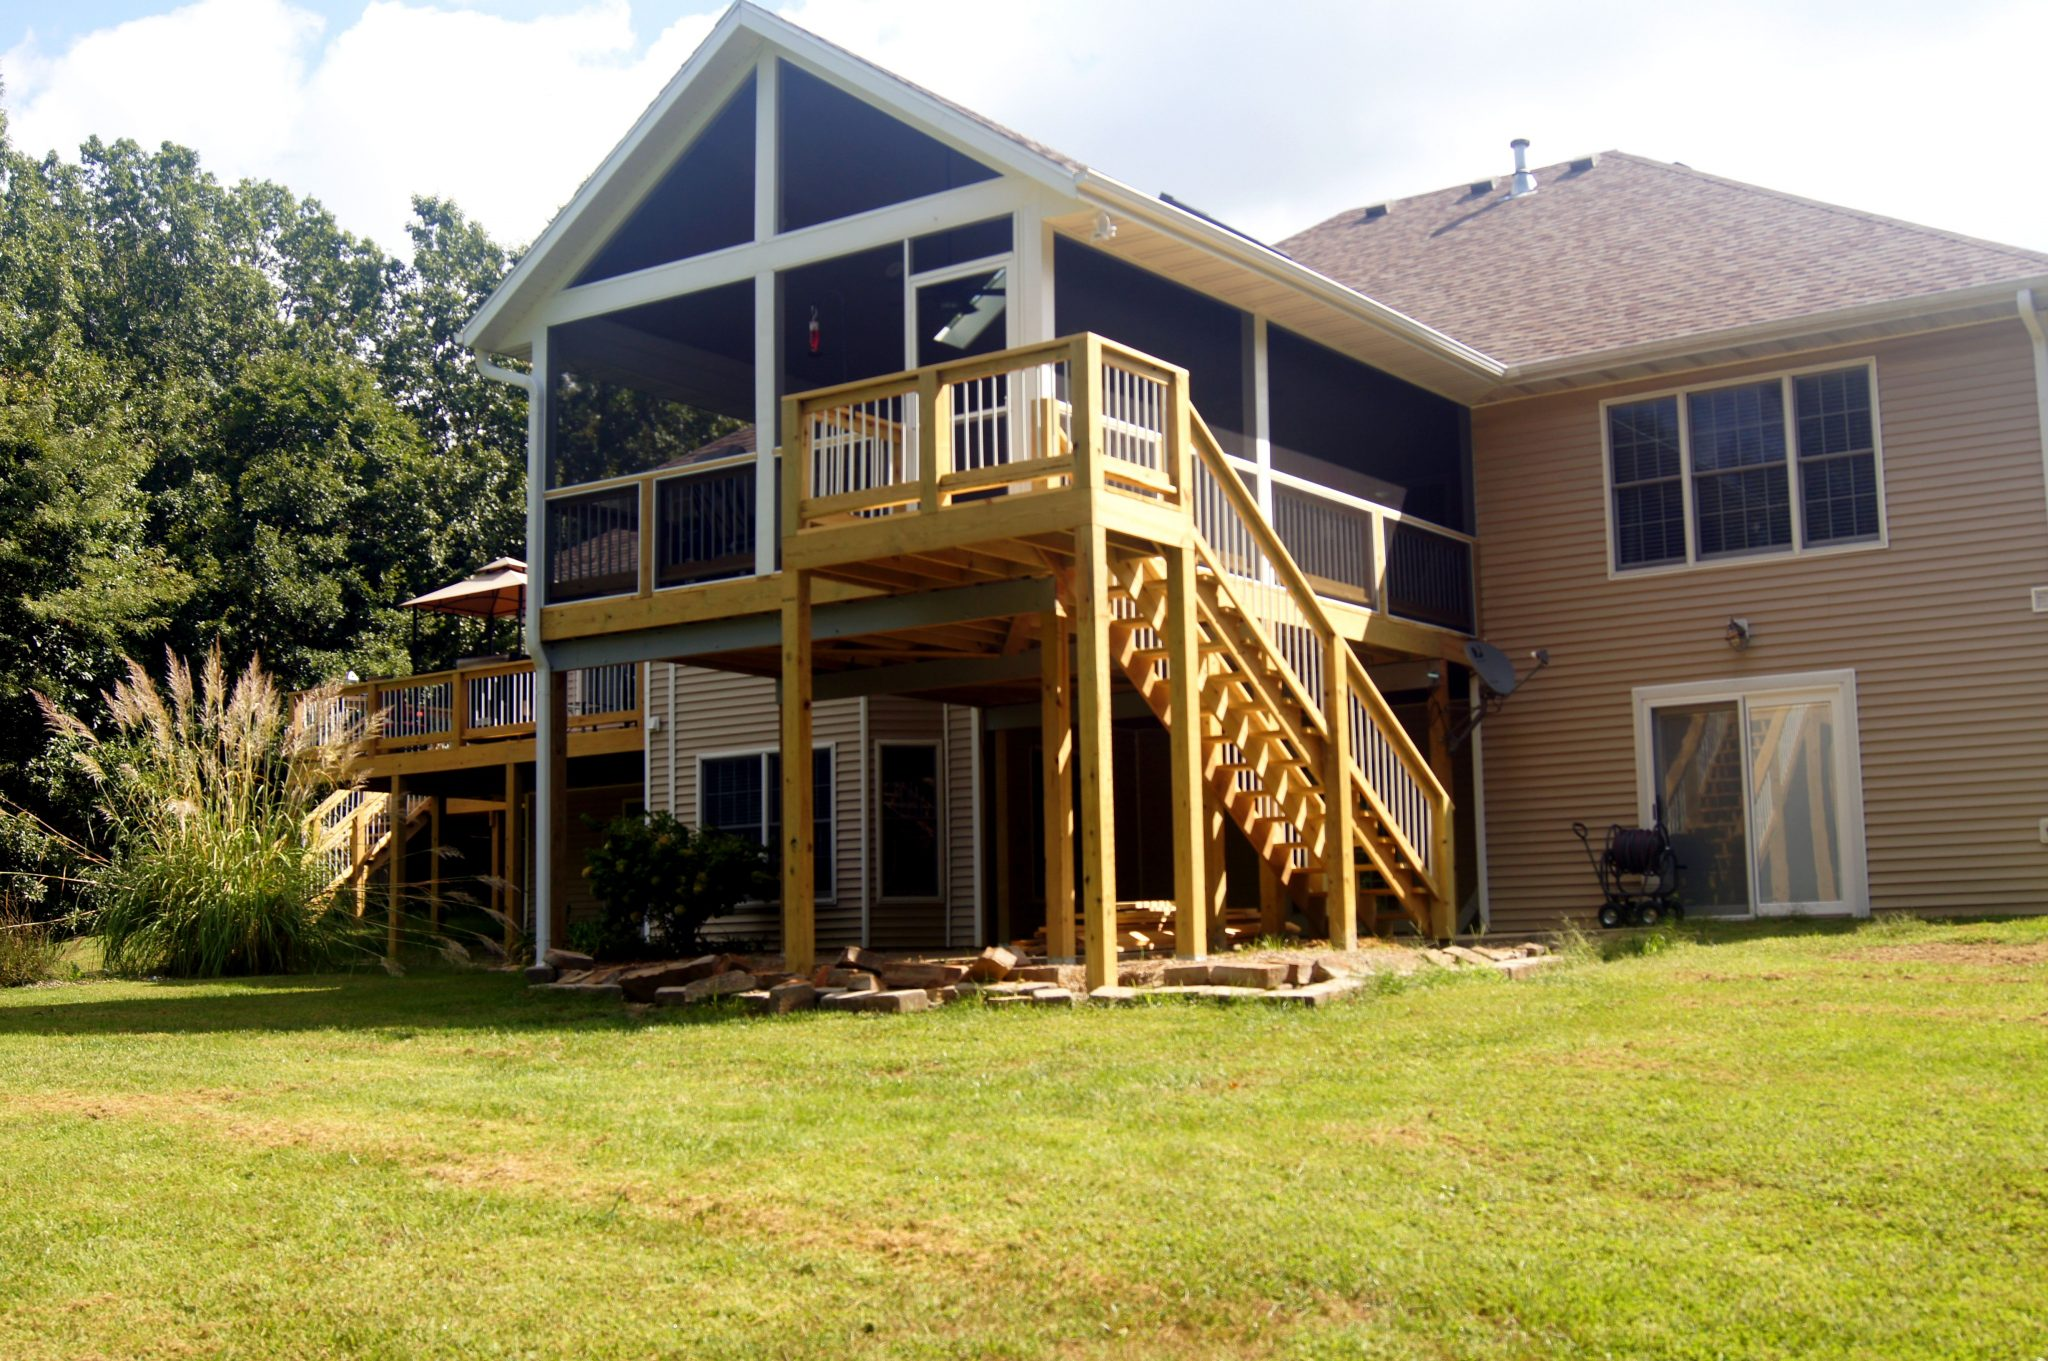 New screened in porch and deck stairs leading to backyard.